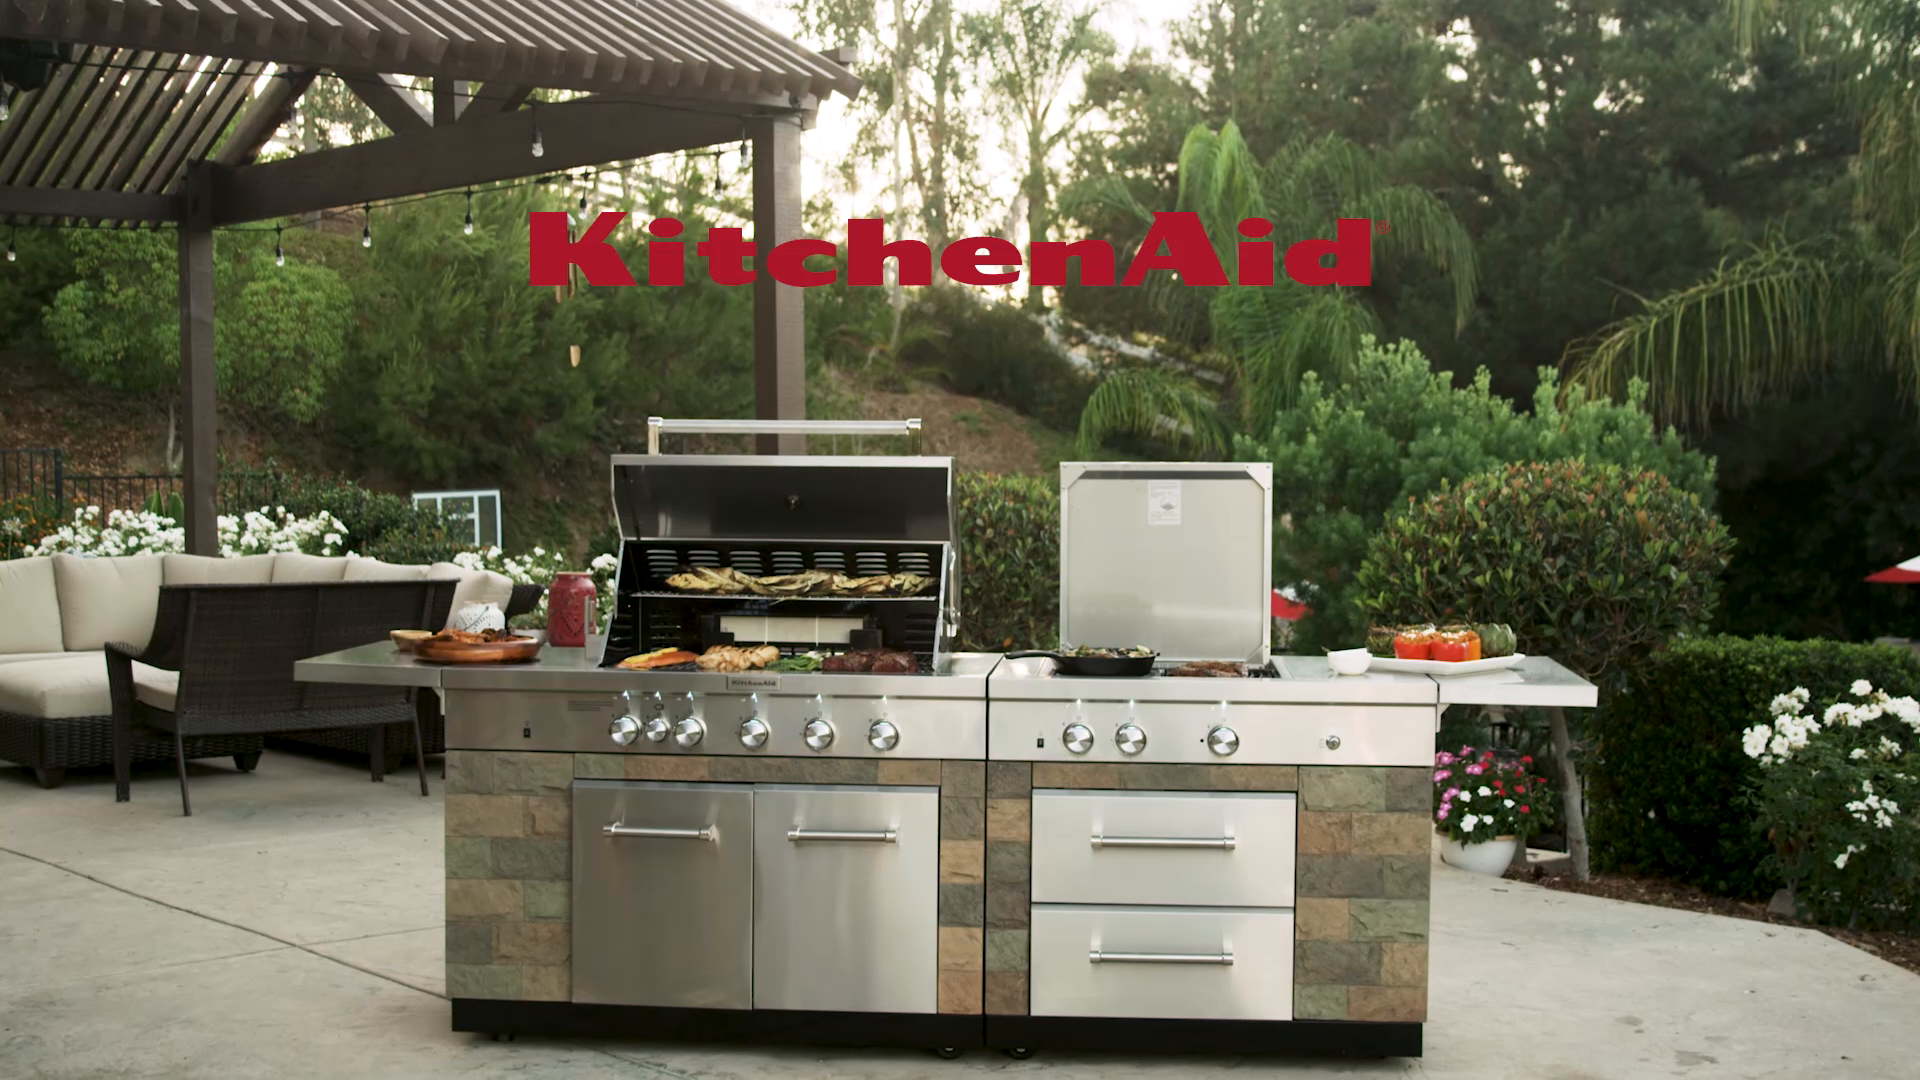 Kitchenaid Barbecue Island Kitchen Appliances Tips And Review